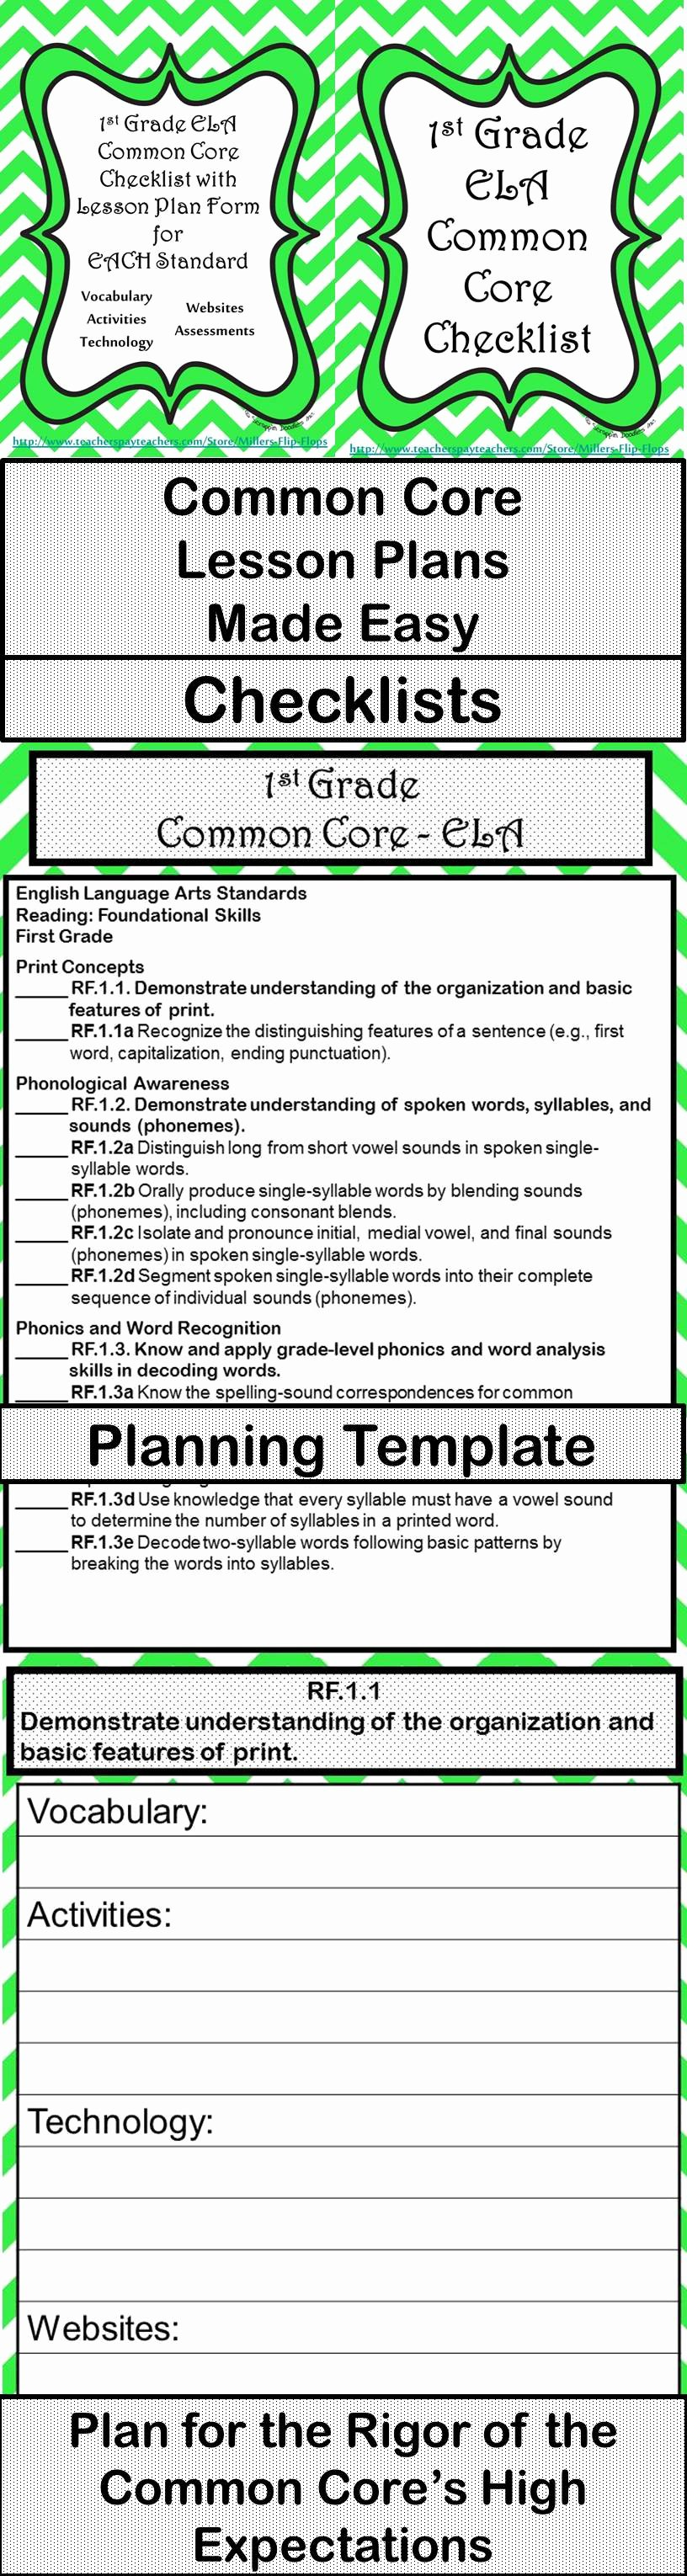 Lesson Plan Template Common Core Elegant 1st Grade Ela Mon Core Checklist Lesson Planning form Green Chevron